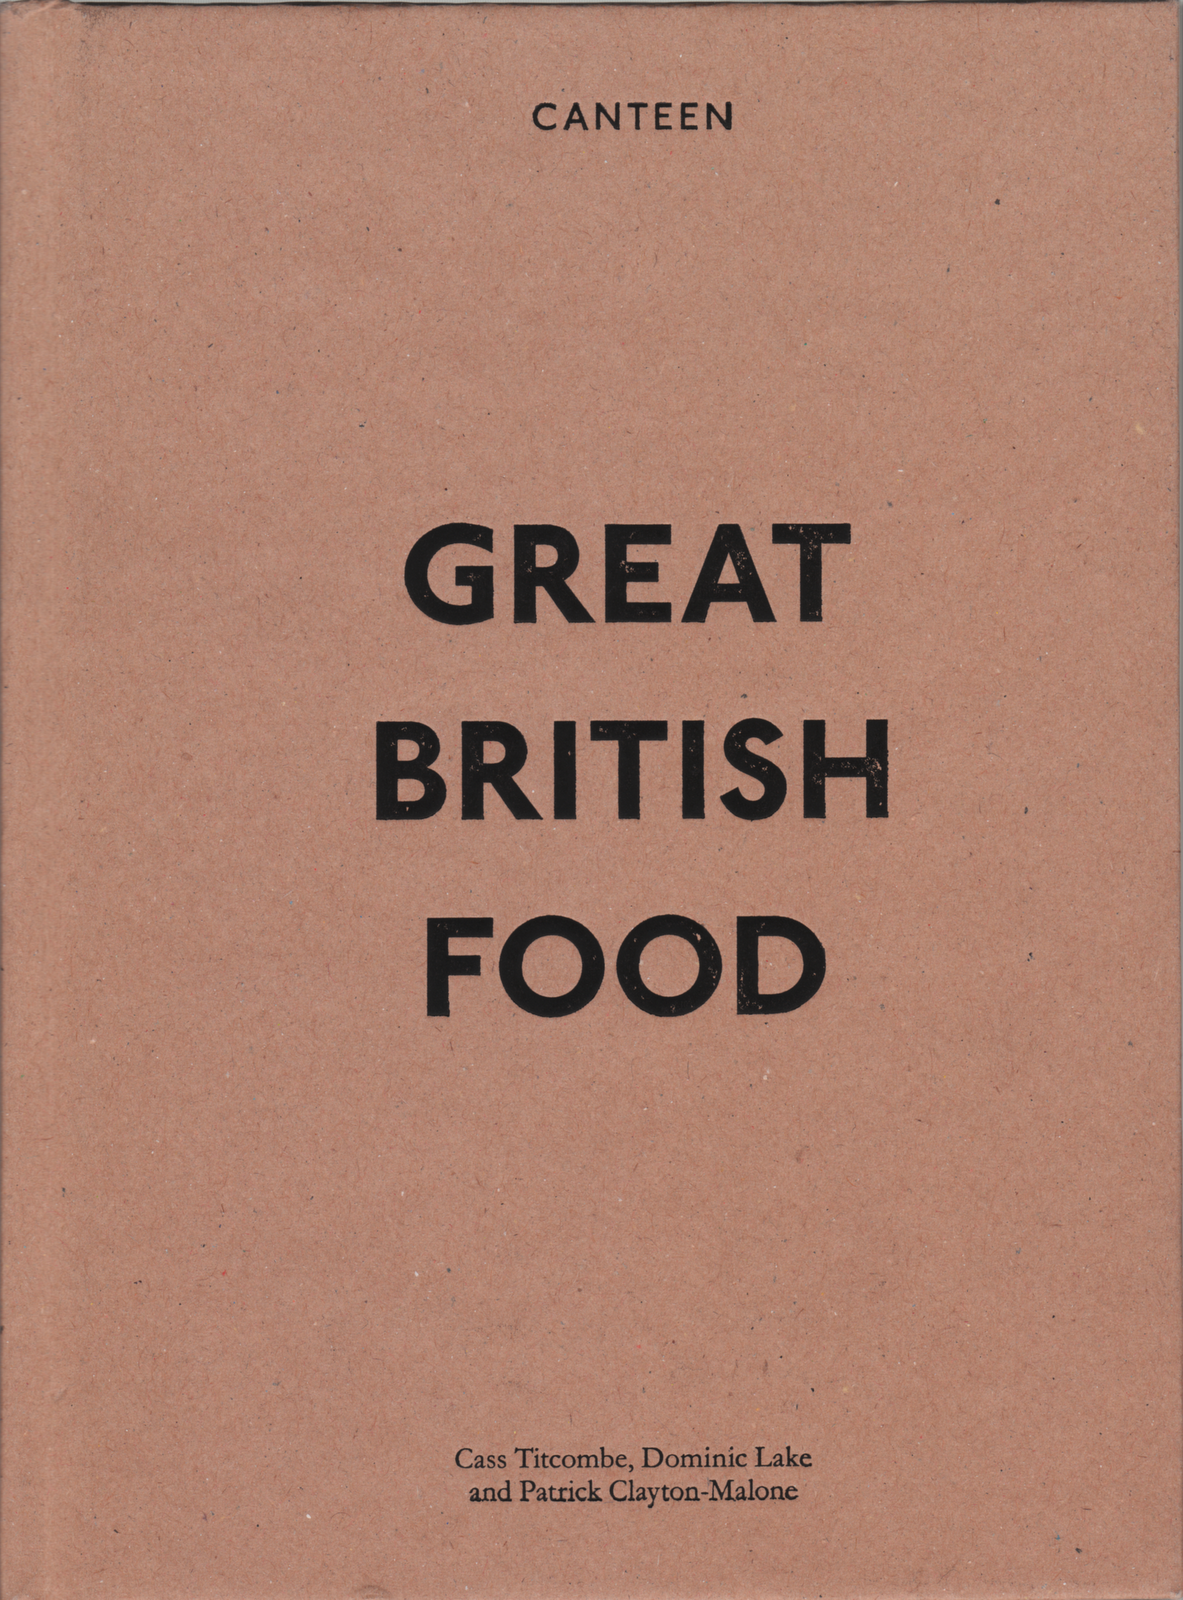 Great british food book canteen britain pinterest canteen great british food book canteen forumfinder Choice Image